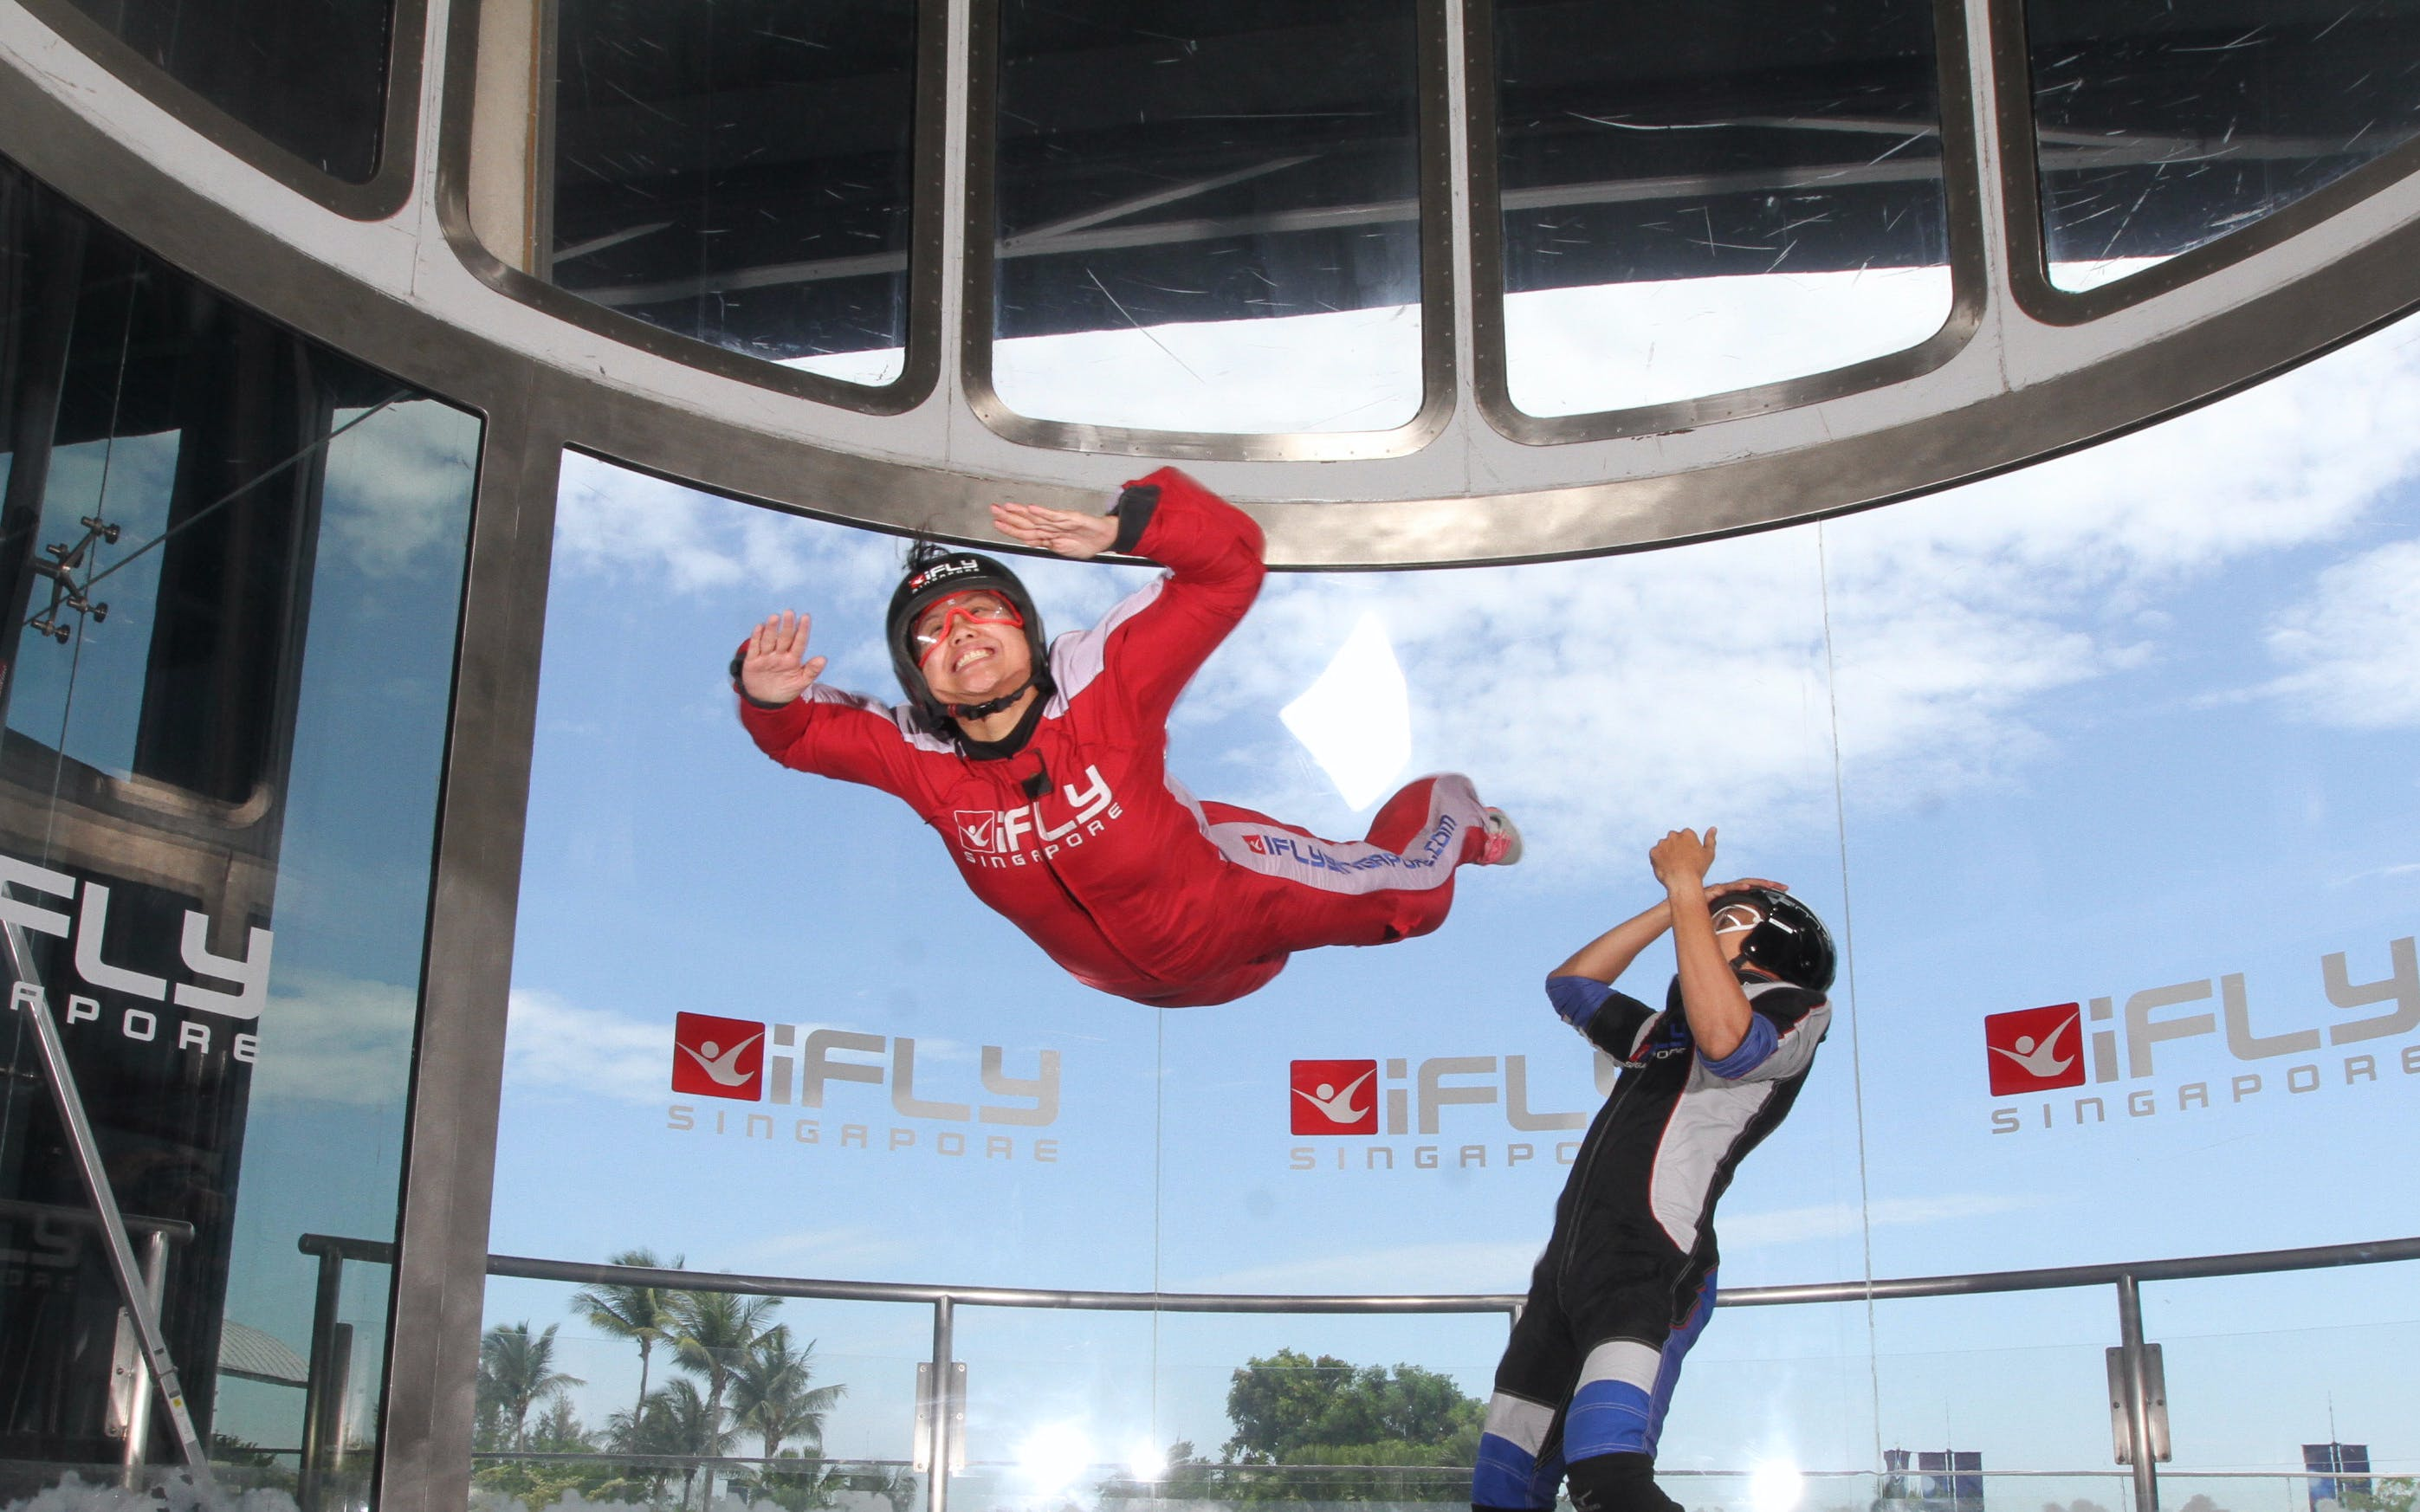 Best Things to do in Singapore - iFly Singapore - 3